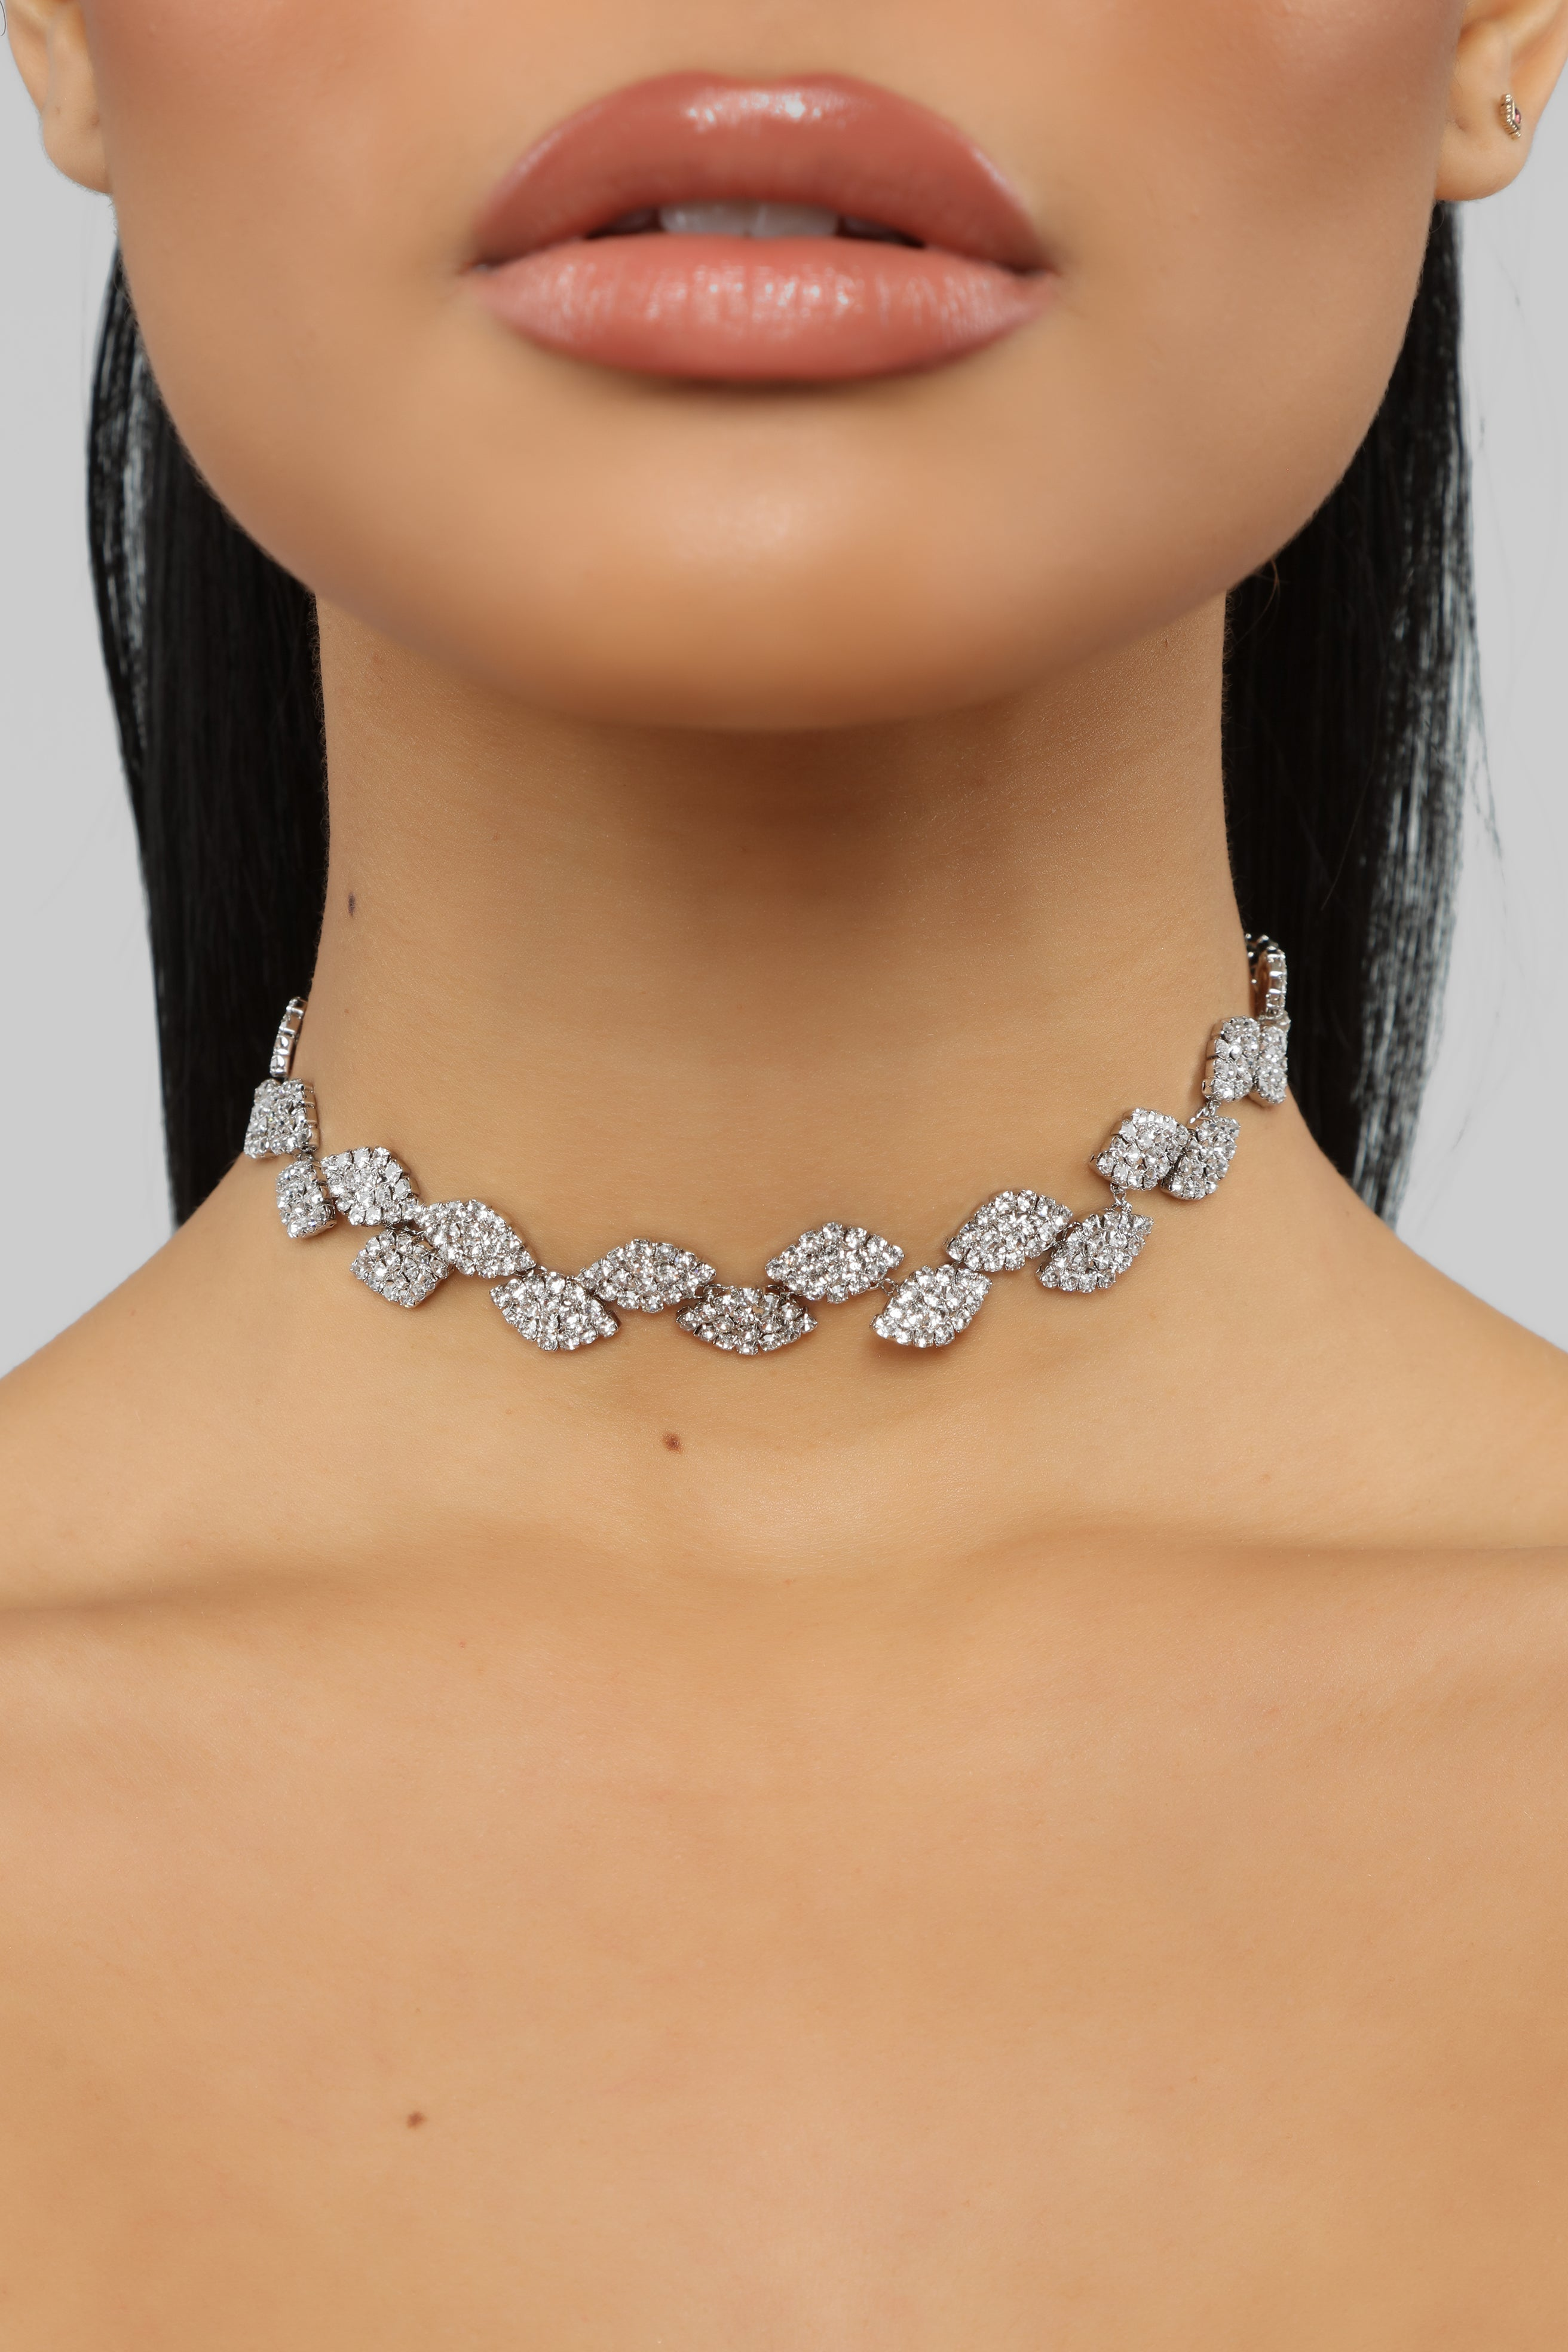 14dfc0599edb2 House Of Diamonds Necklace - Silver